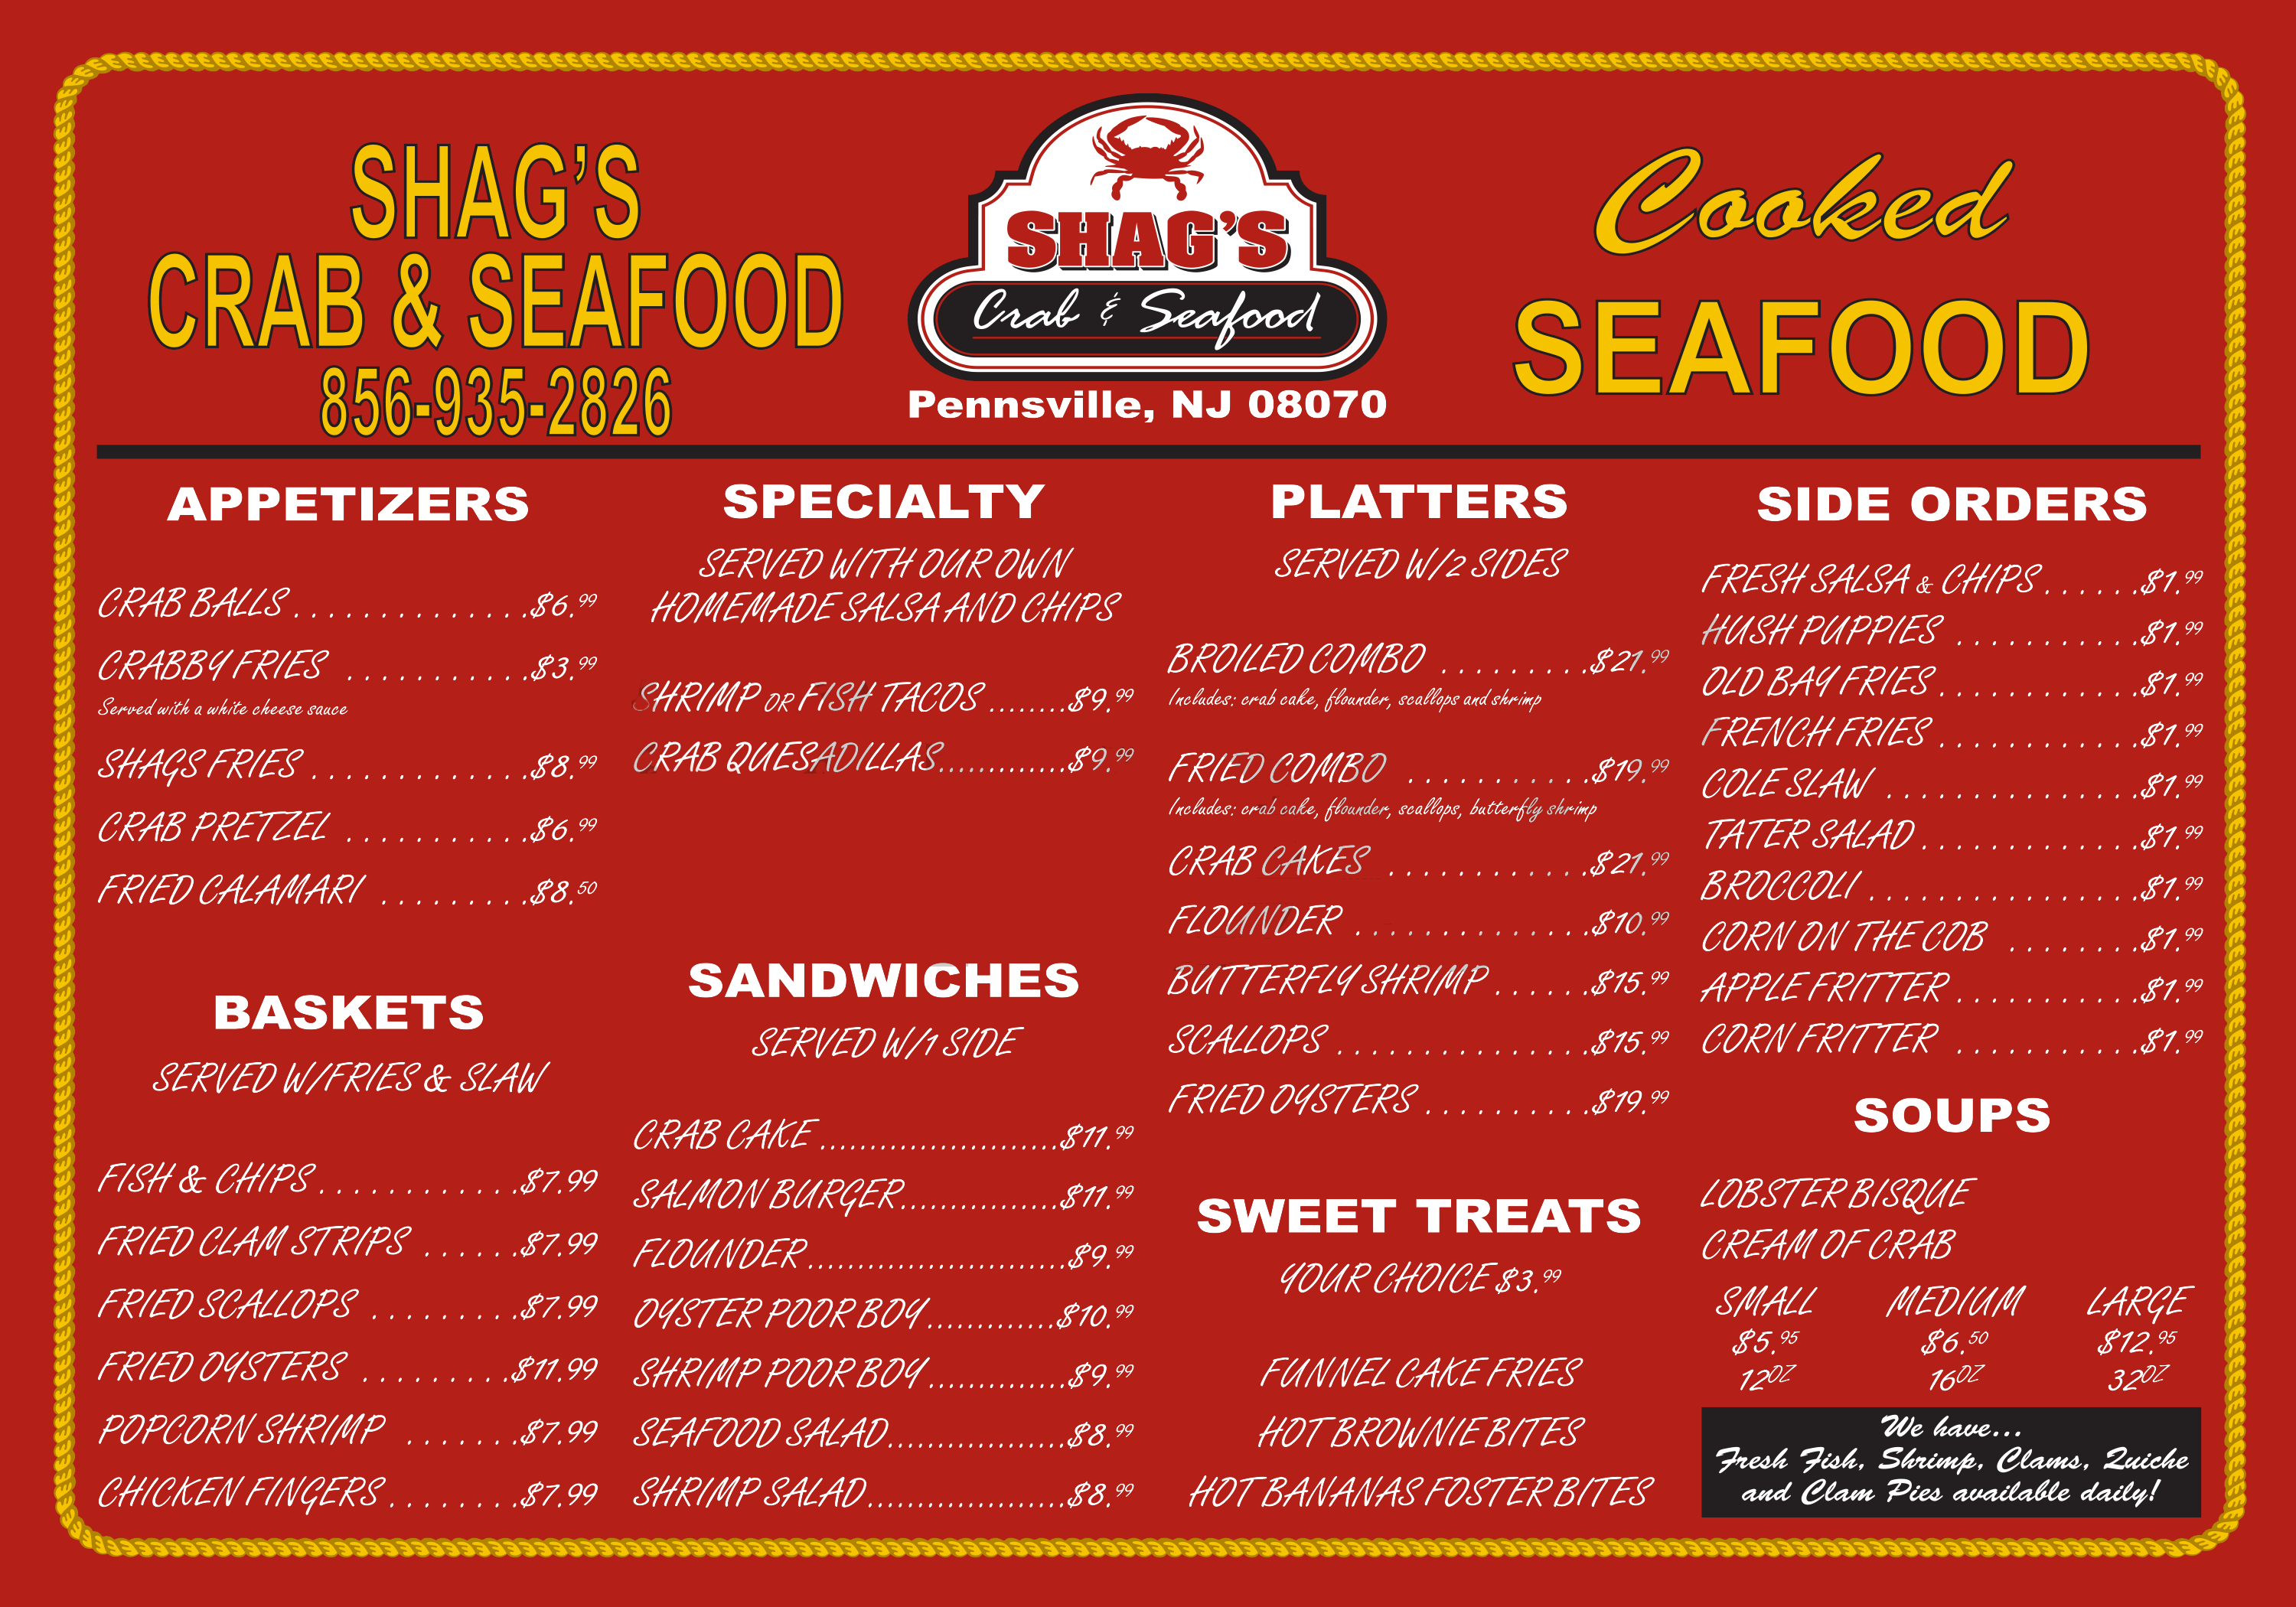 Shags menu large